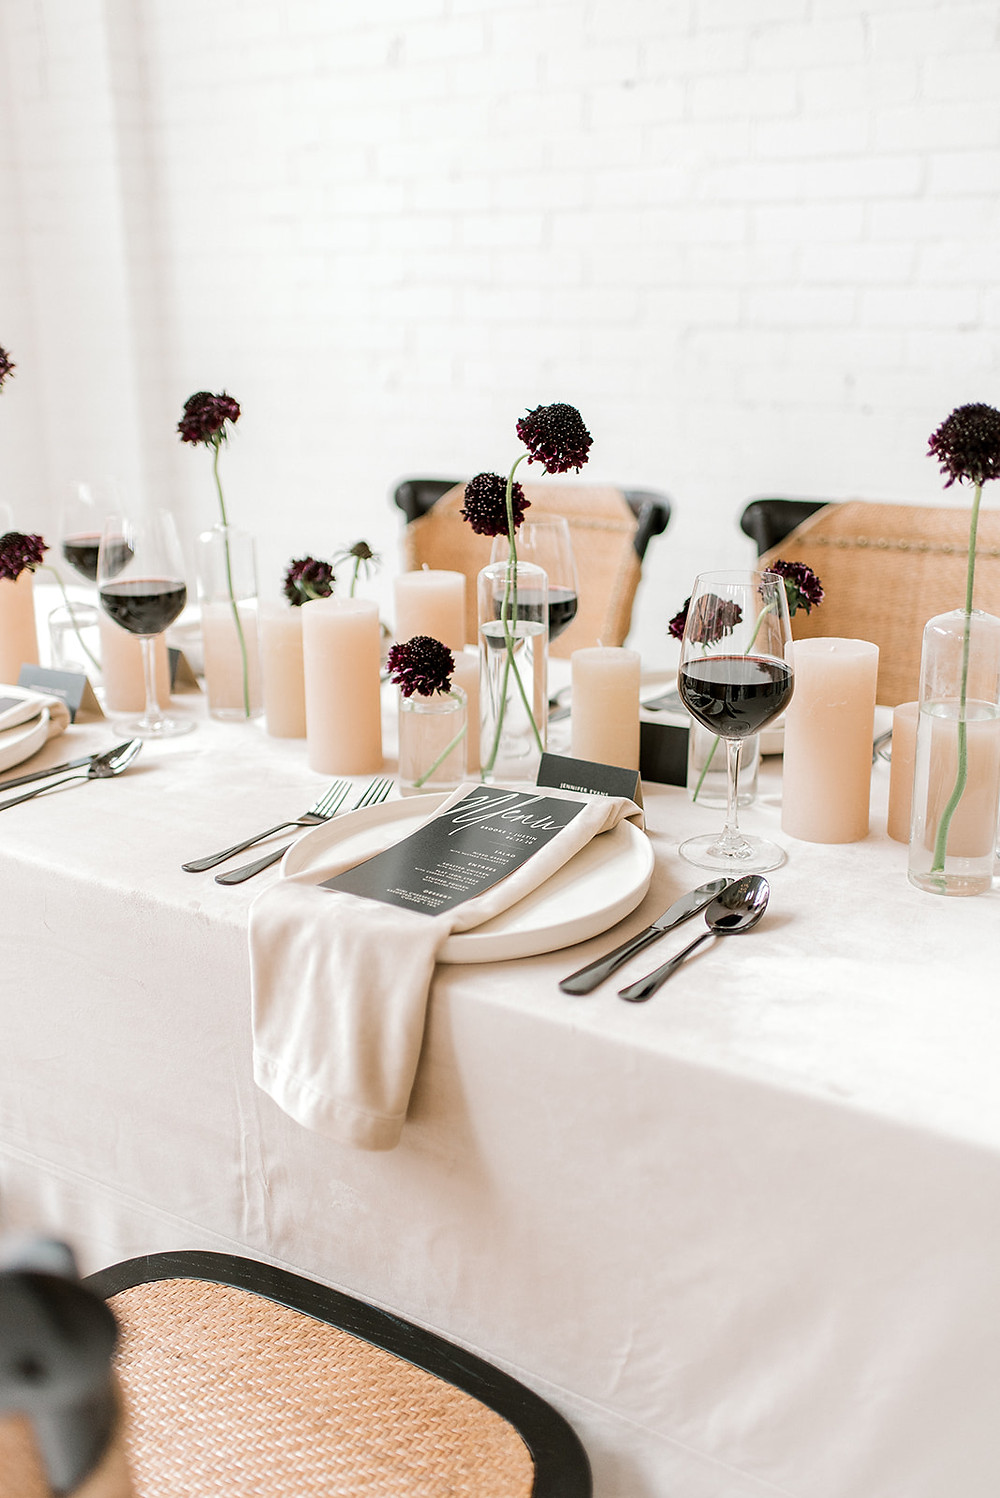 neutral minimalist wedding table with budvases of black scabiosa and beige pillar candles